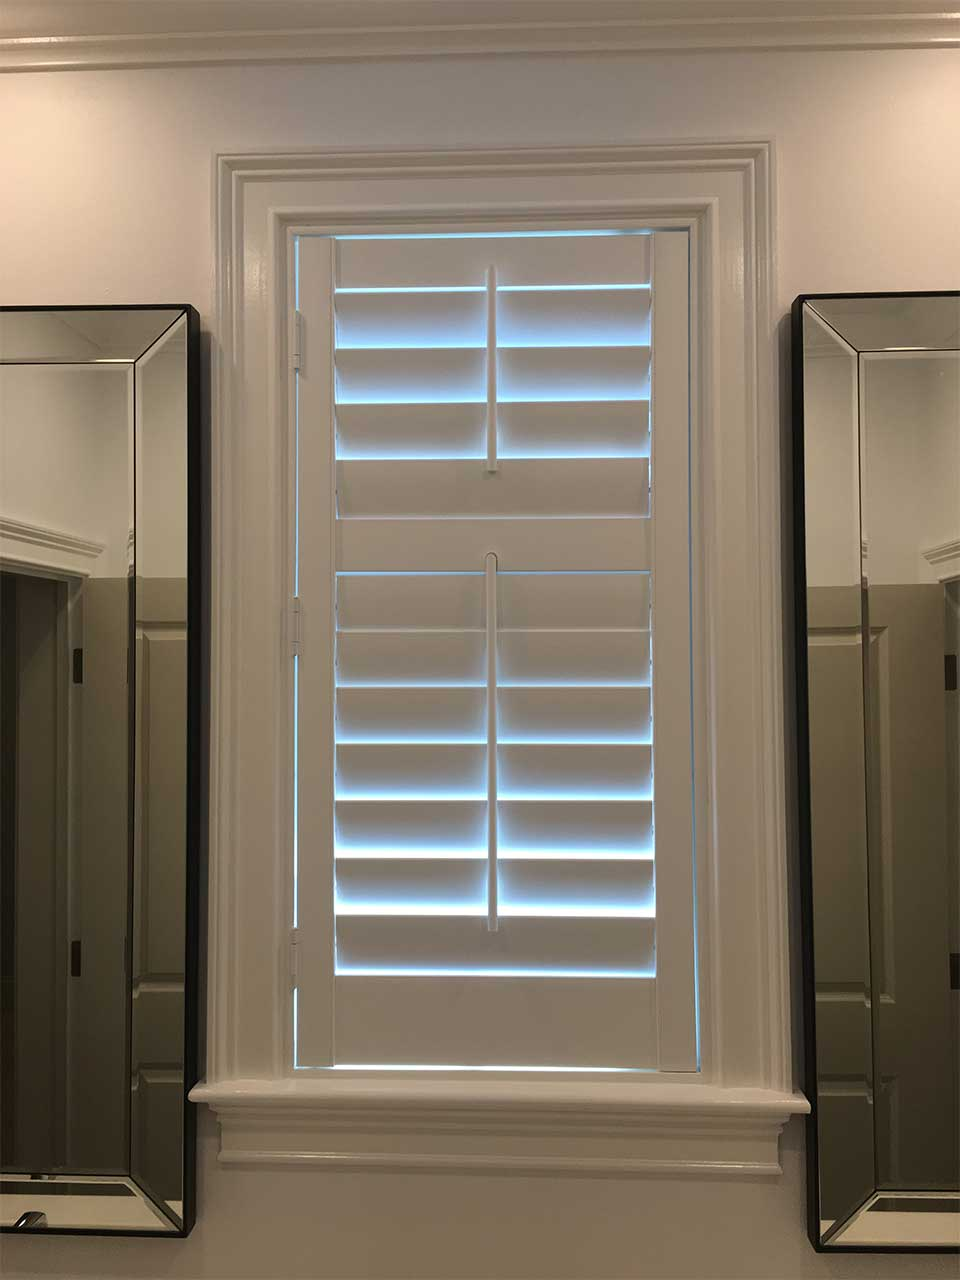 Shutters in bathroom